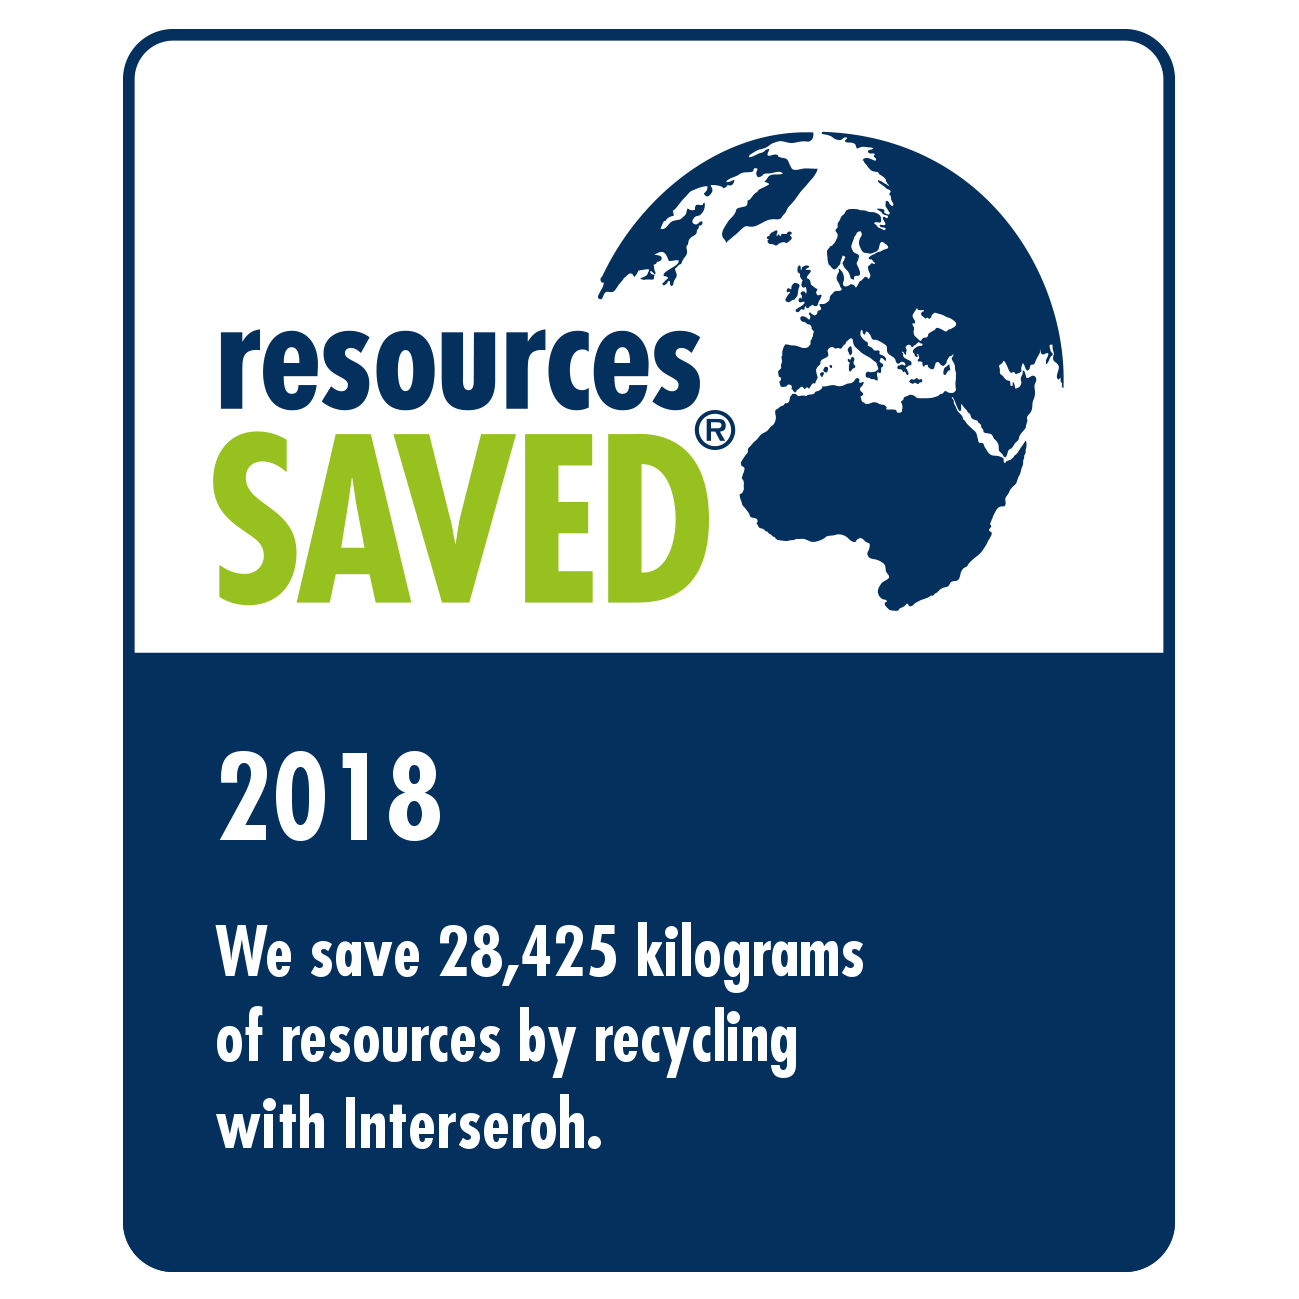 2018 - Saved resources by recycling